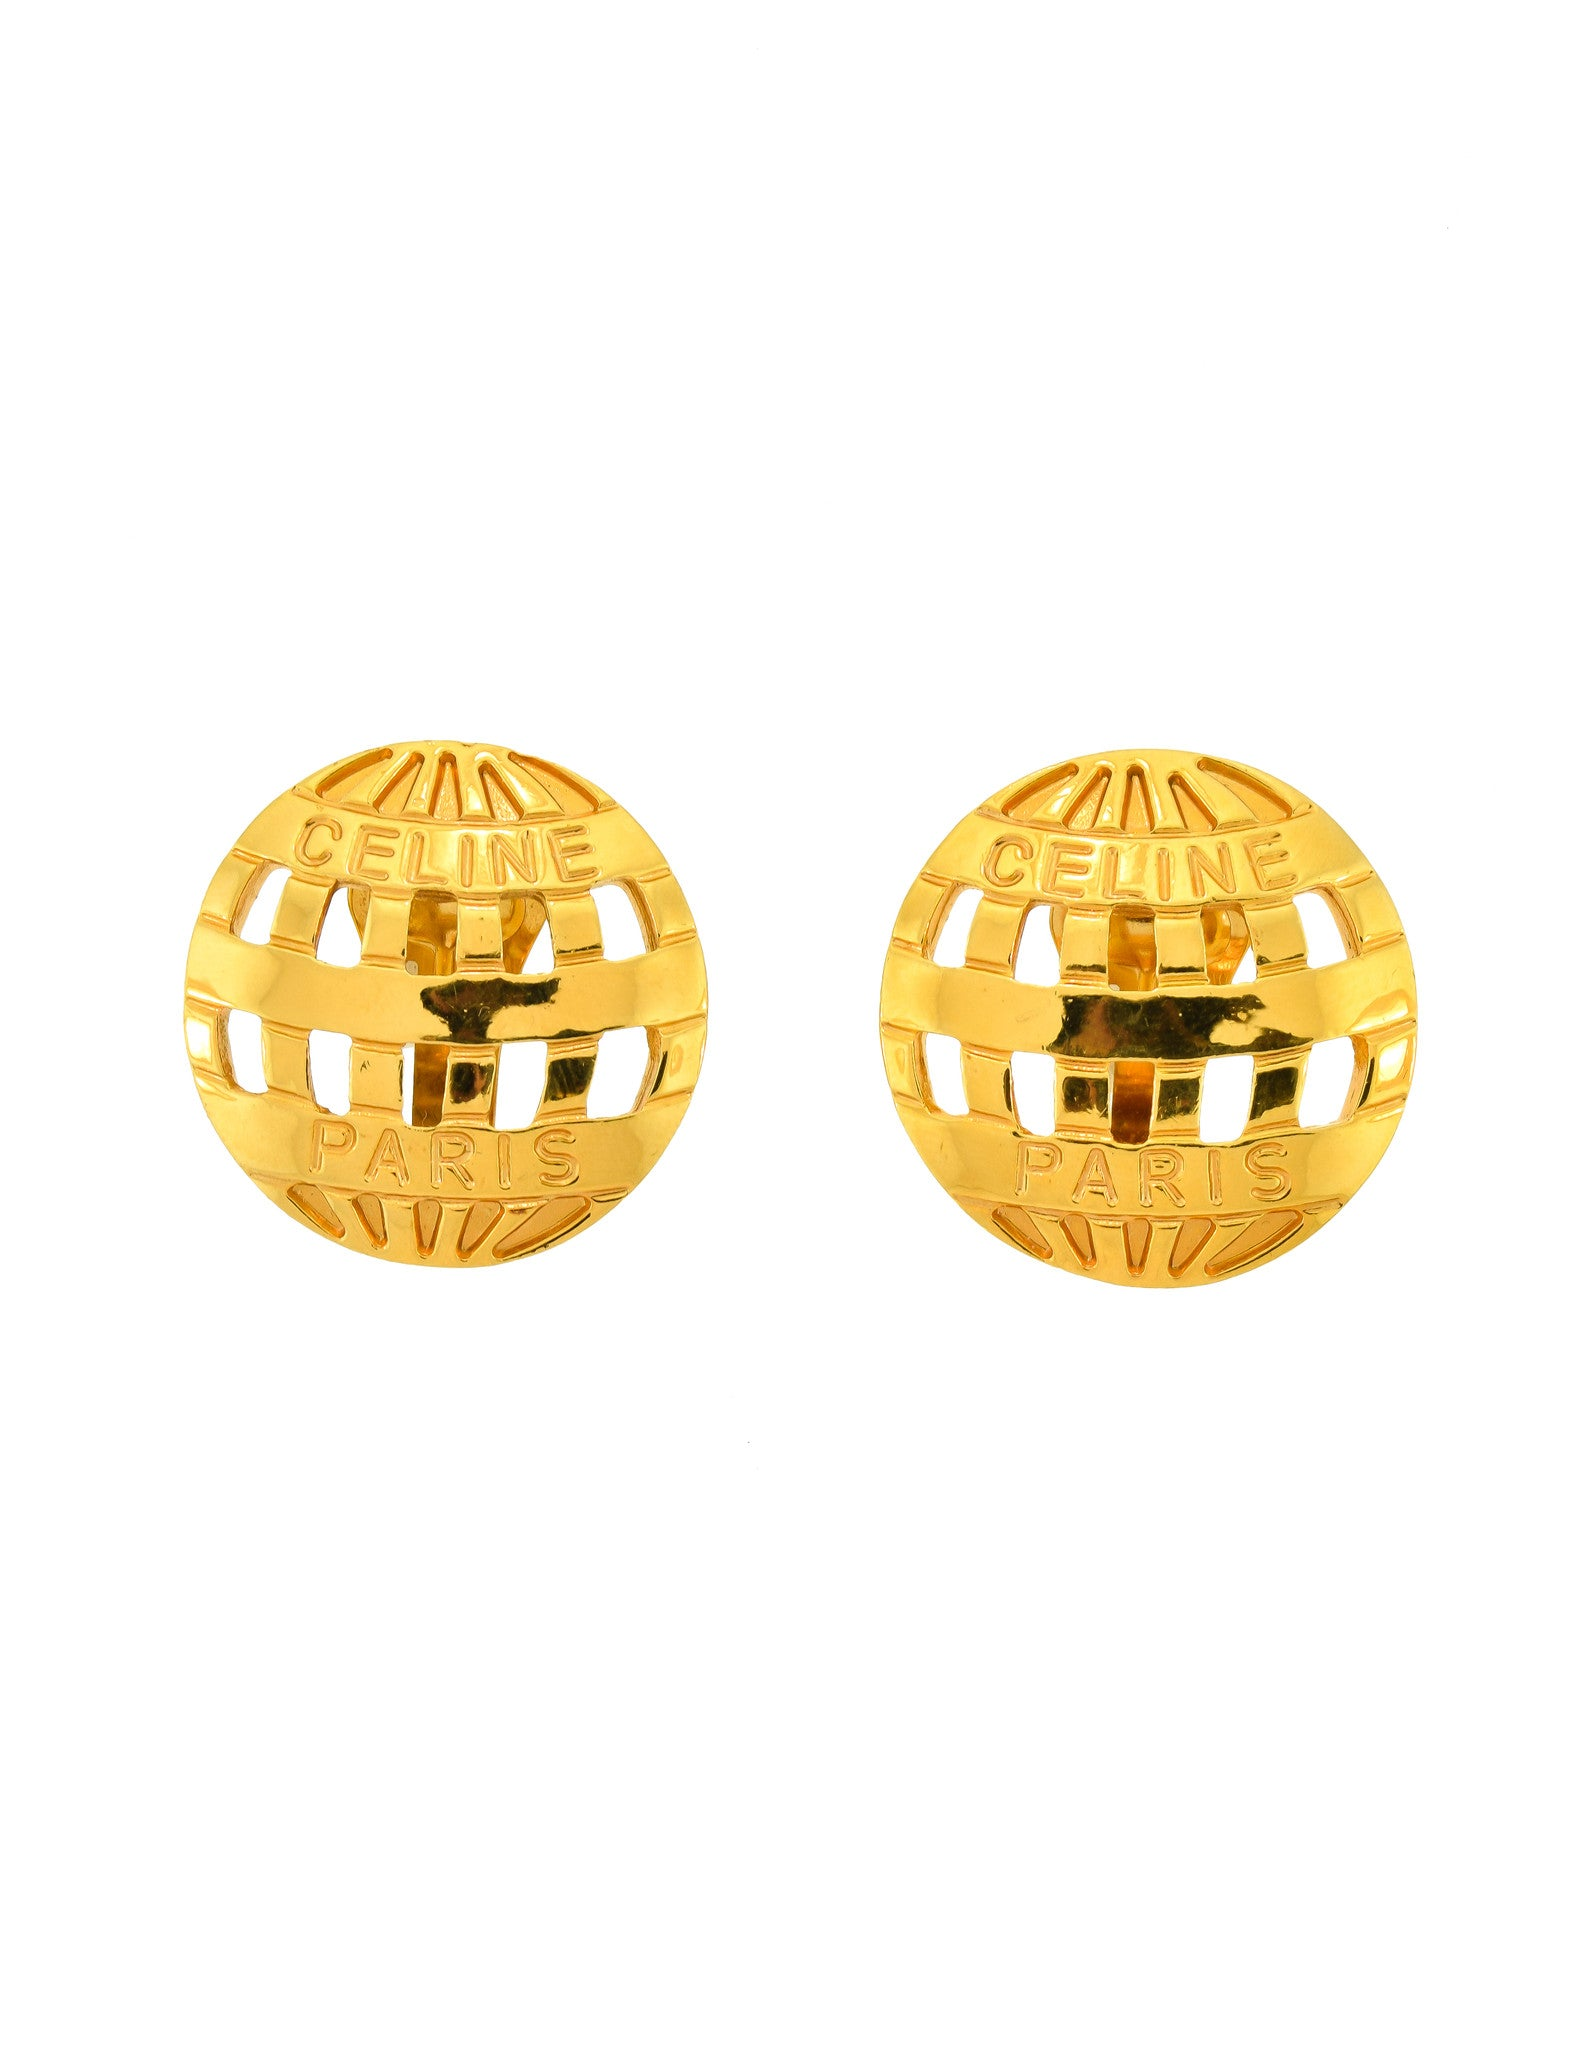 Celine Vintage Gold Hot Air Balloon Earrings - Amarcord Vintage Fashion  - 1